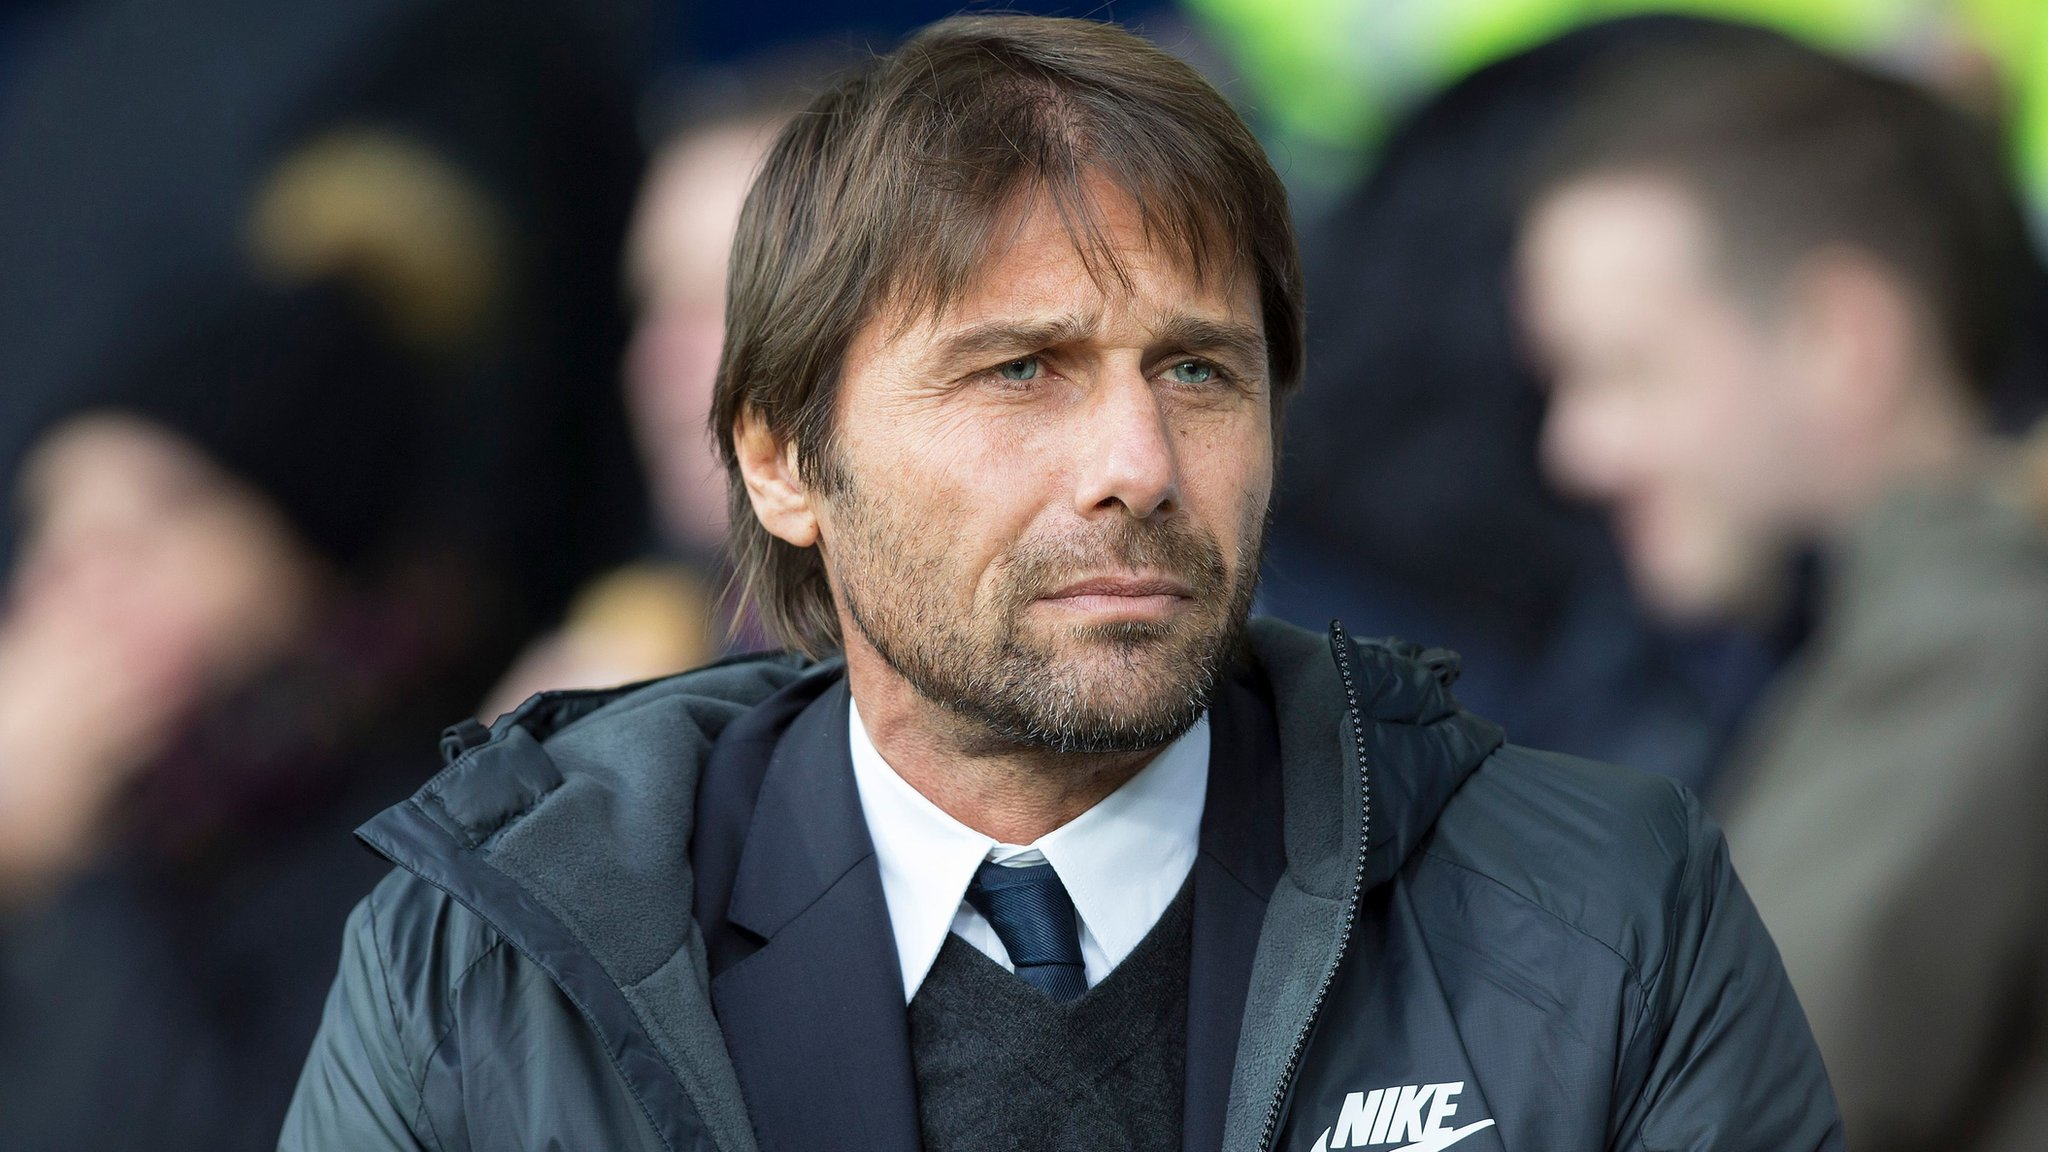 Conte is Italian FA boss' first choice as new Italy coach